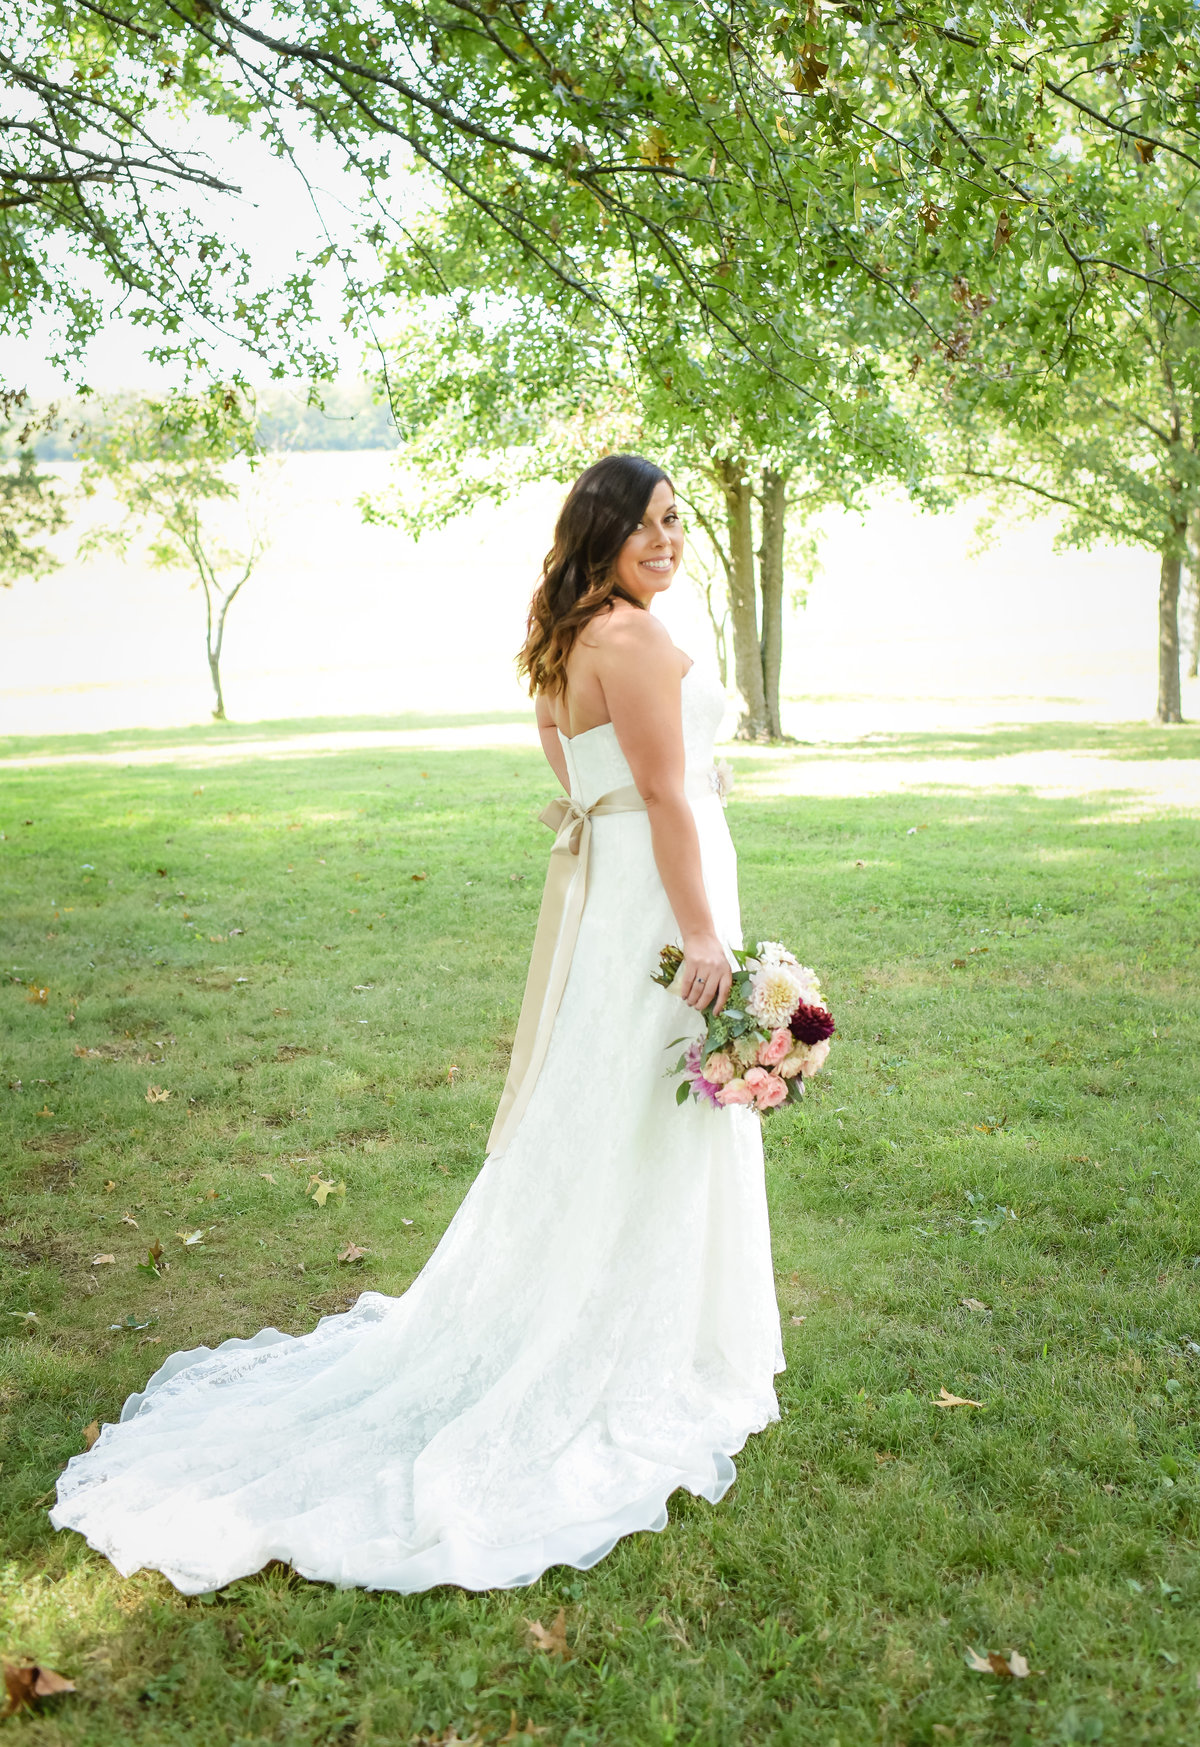 Tennessee Wedding Photographer - Mint Magnolia Photography0707